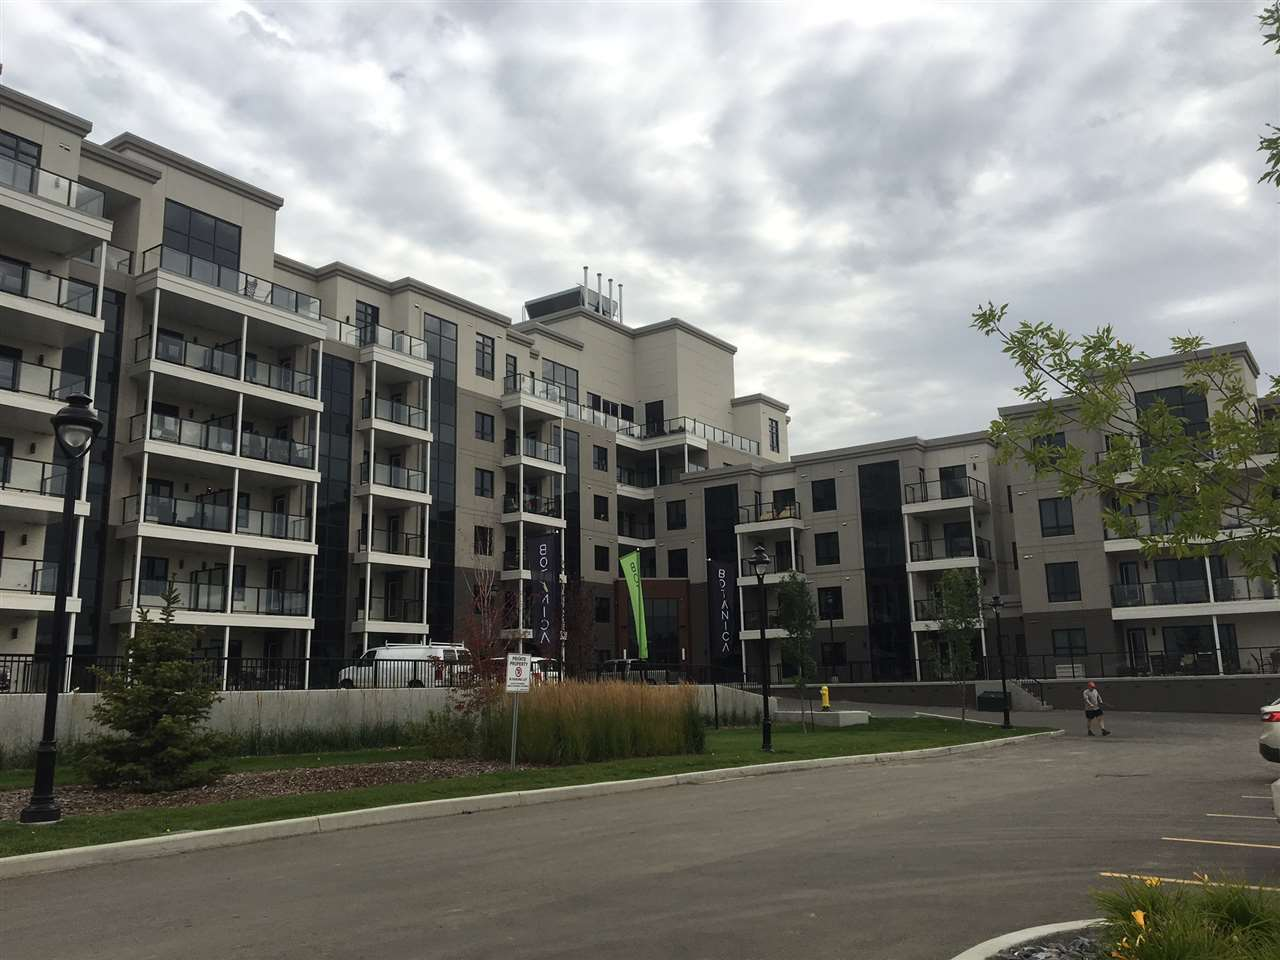 NOW EVEN A BETTER DEAL! This ONE BEDROOM PLUS DEN unit in THE BOTANICA  has the most exclusive address in St. Albert.  Adjacent to THE SHOPS AT BOUDREAU , you will find restaurants,  shops and varied services. This high end steel and concrete building offers sound proof living with enhanced  fire safety. The open floor plan from entrance, through kitchen, dining and living rooms are modern with extras to appreciate. The master bedroom has a spacious walk in closet plus 5 piece en suite bathroom including double sinks and deep soaker tub and large shower with quality glass doors. Cambria quartz countertops highlight both baths and kitchen.The highest quality  is  standard throughout. The kitchen appliances are Bosch, plus a garburator and silgranit under mount sink , the back splash is full height and a great choice. The den leads into the powder room for nice privacy. The laundry room is spacious and your fan coil system is floor mounted. engineered hardwood, porcelain tile and 43 oz carpet in bedroom.